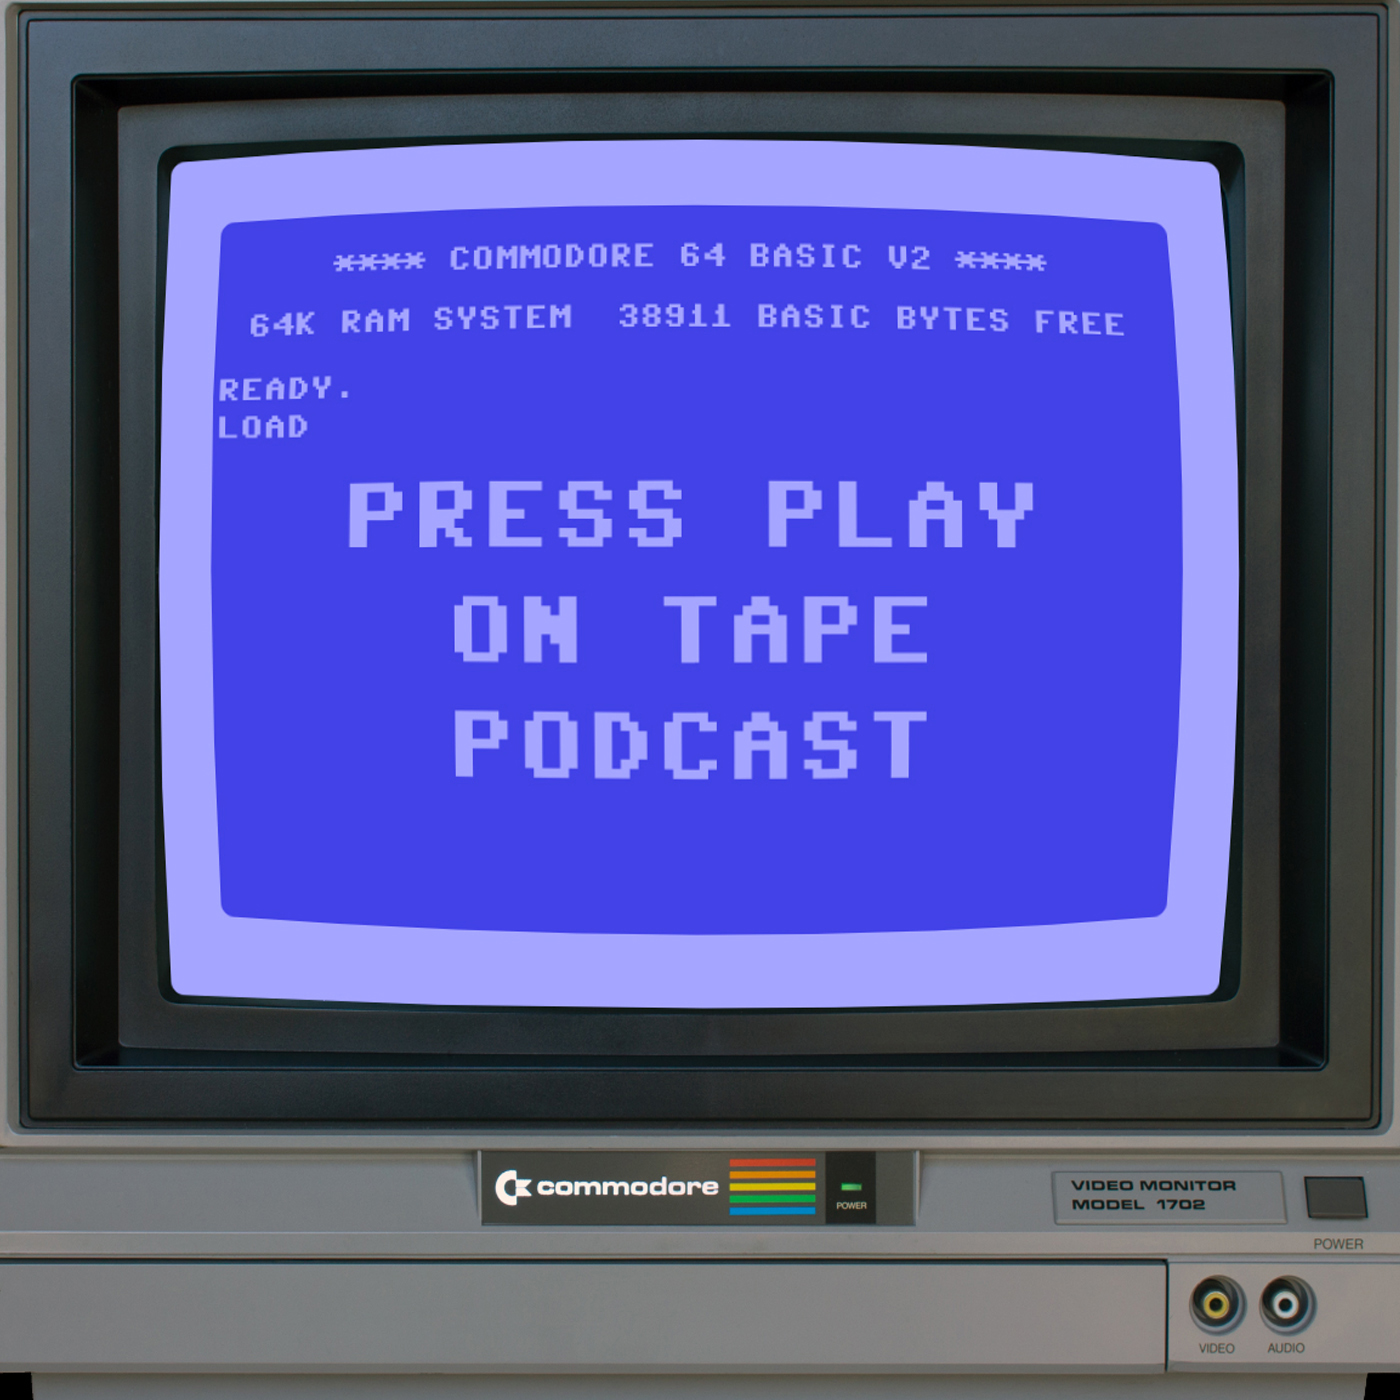 Press Play On Tape Podcast